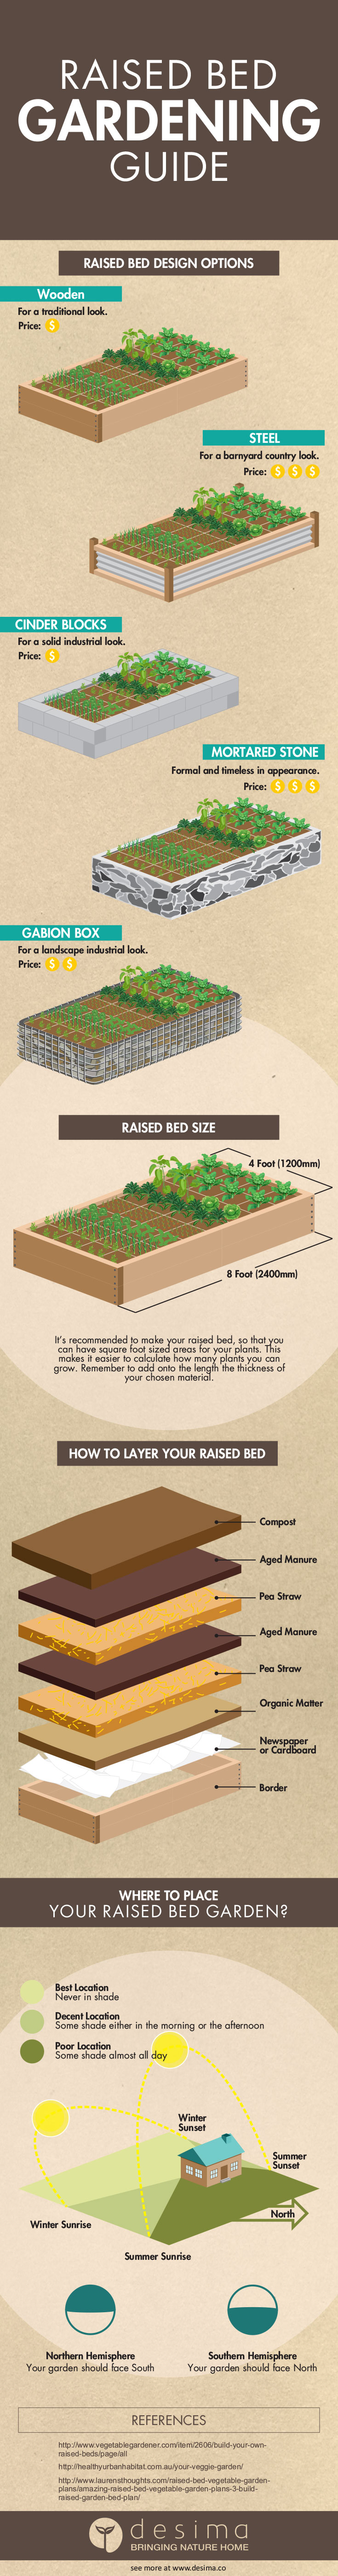 Raised Bed Gardening Guide Infographic